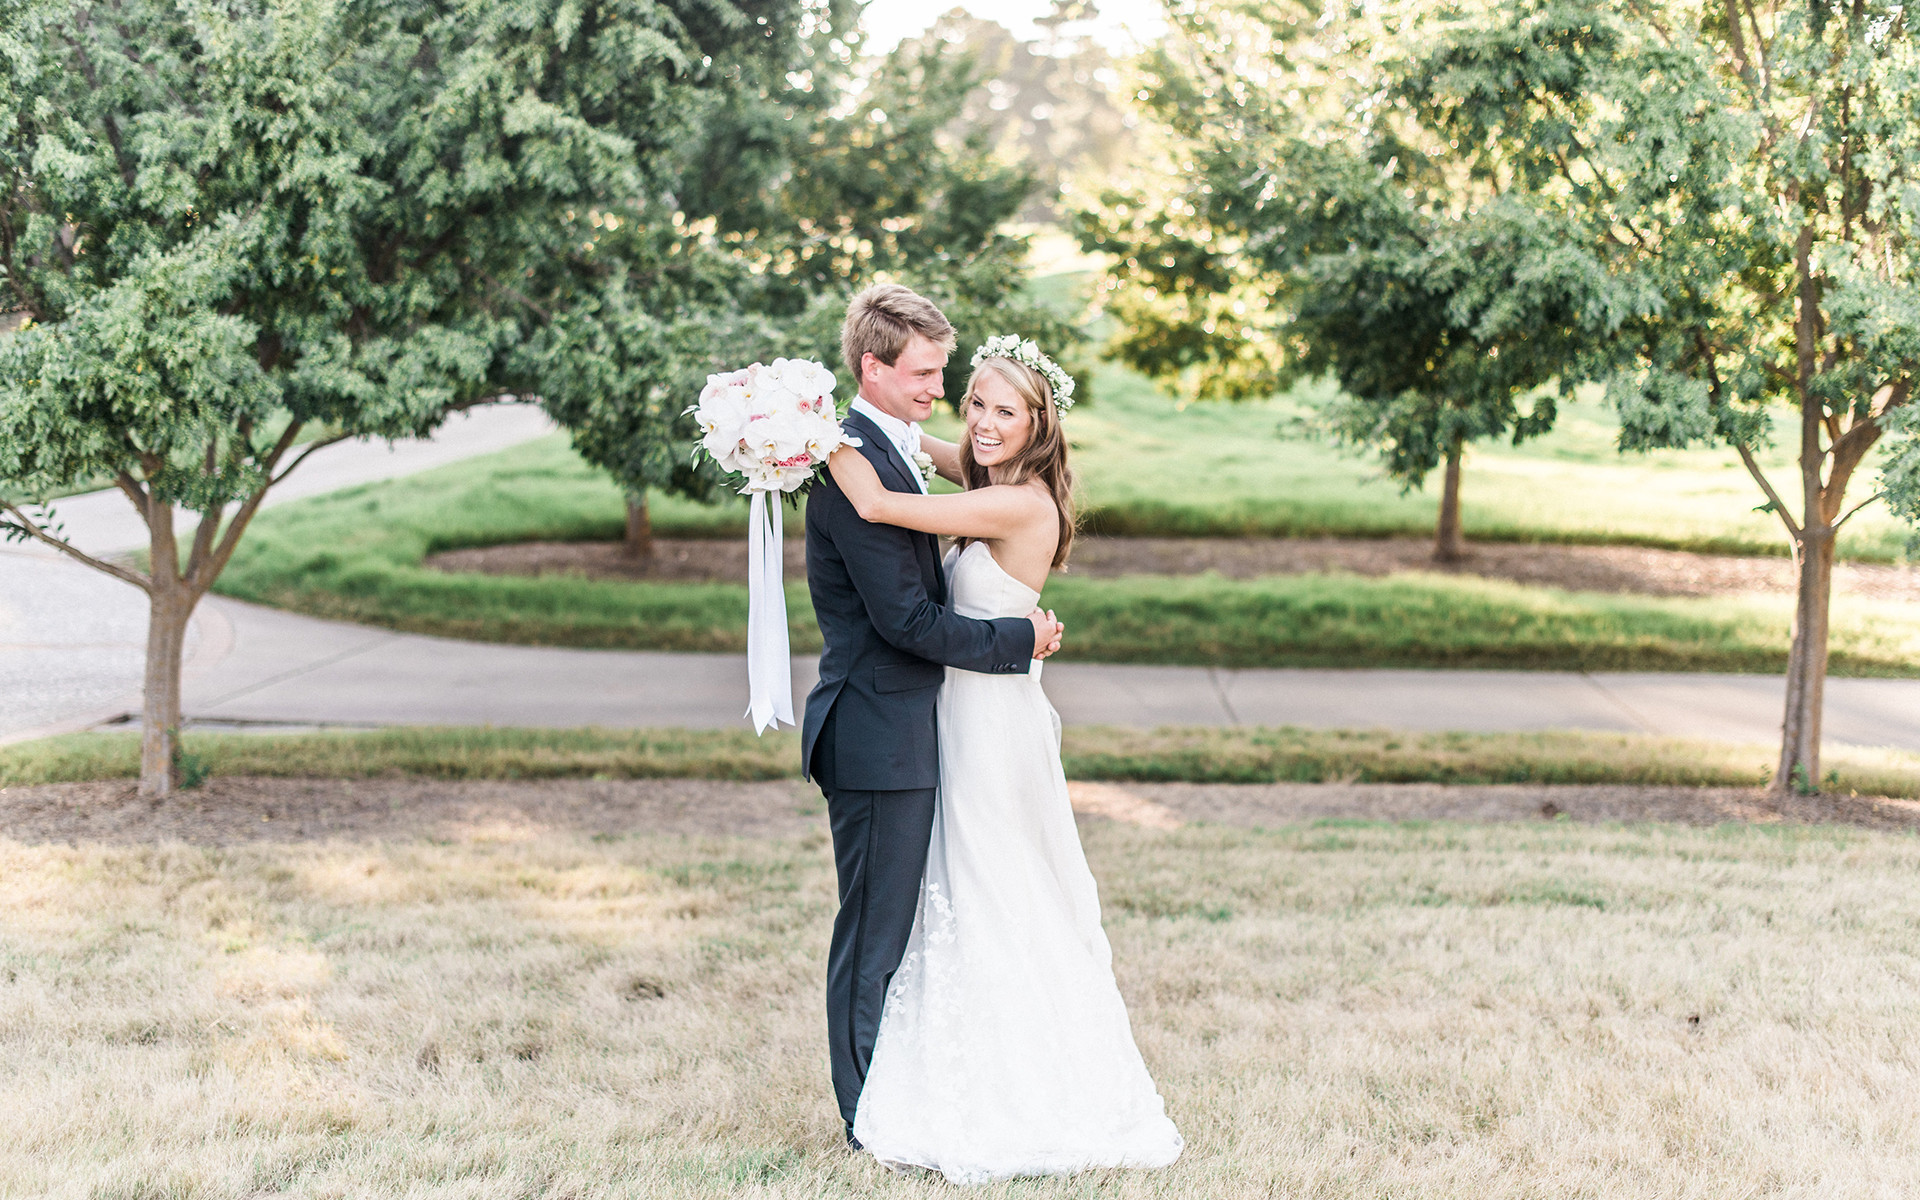 A Private Dinner and Group Late Night Pizza Bar at This Romantic Wedding